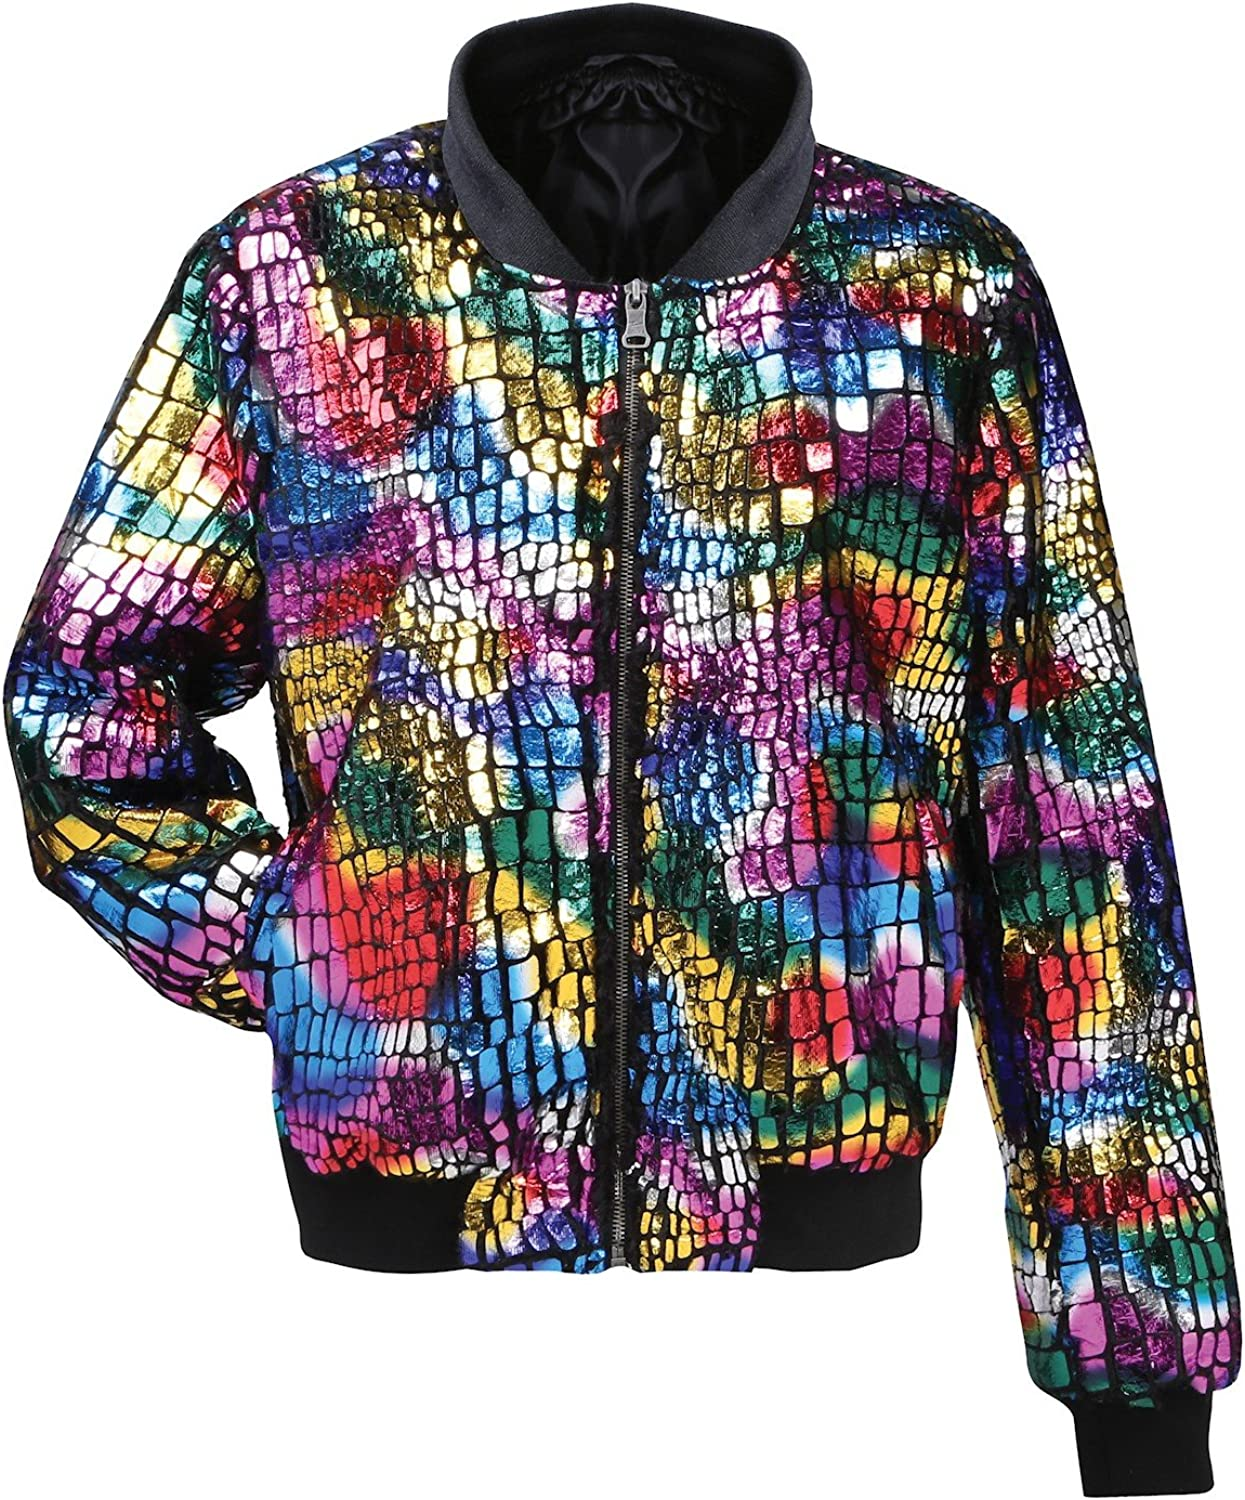 Women/'s Multi-Colored Bomber Fashion Jacket